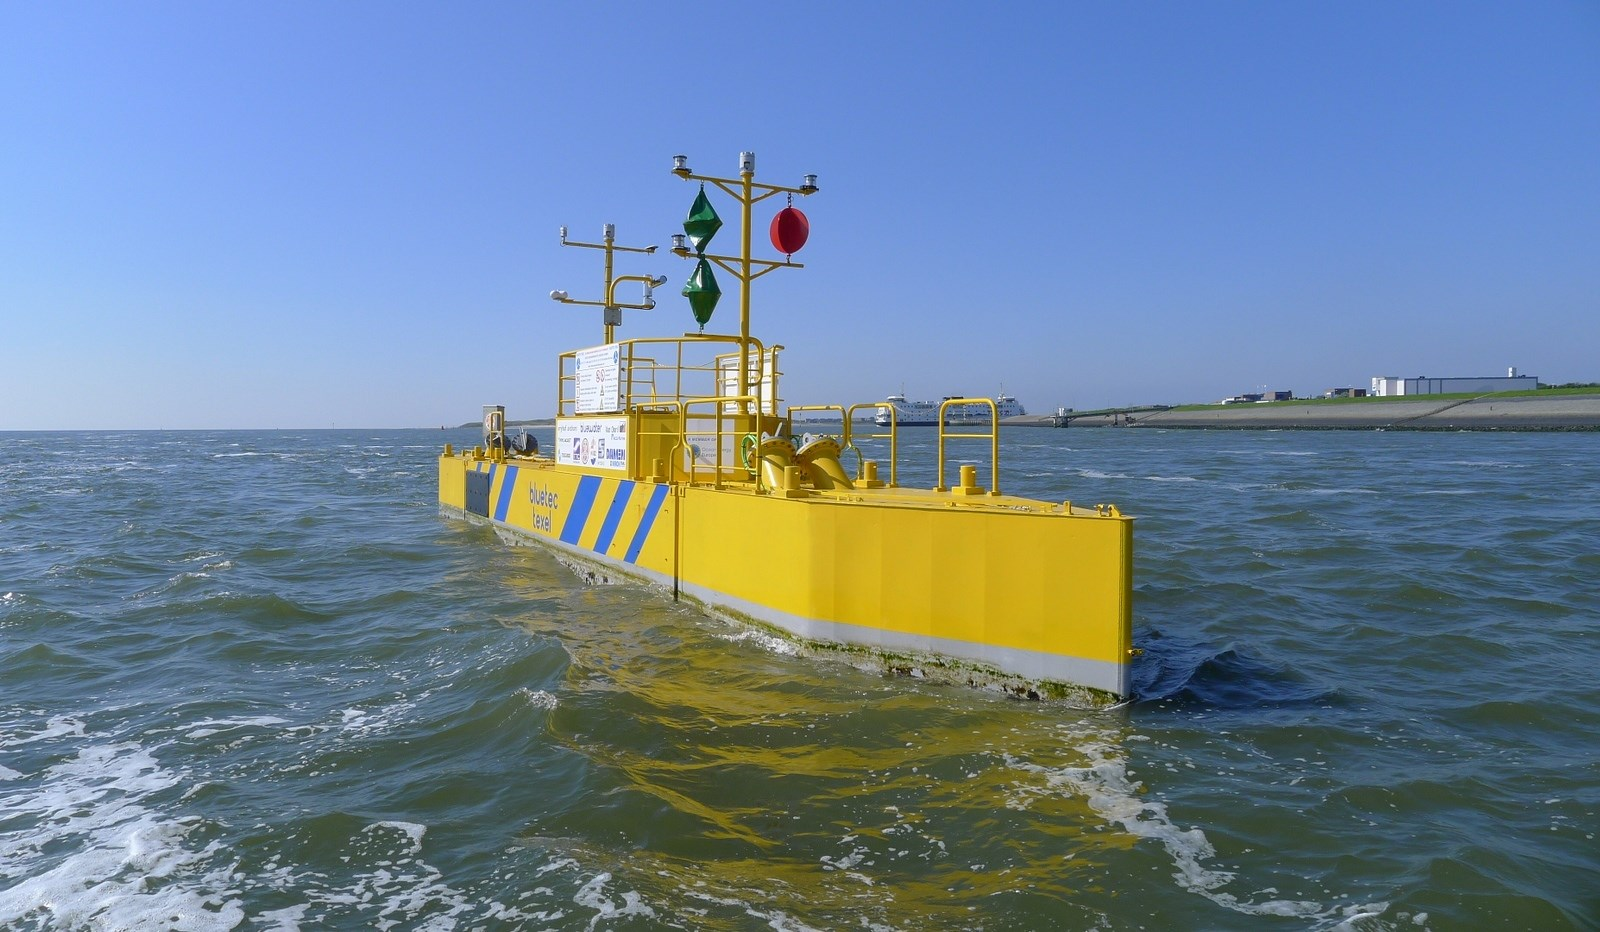 Modular Tidal Turbine 2402 Can Supply Clean Energy To Islands And Generating Electricity The Damen Is A Pontoon For From Tides